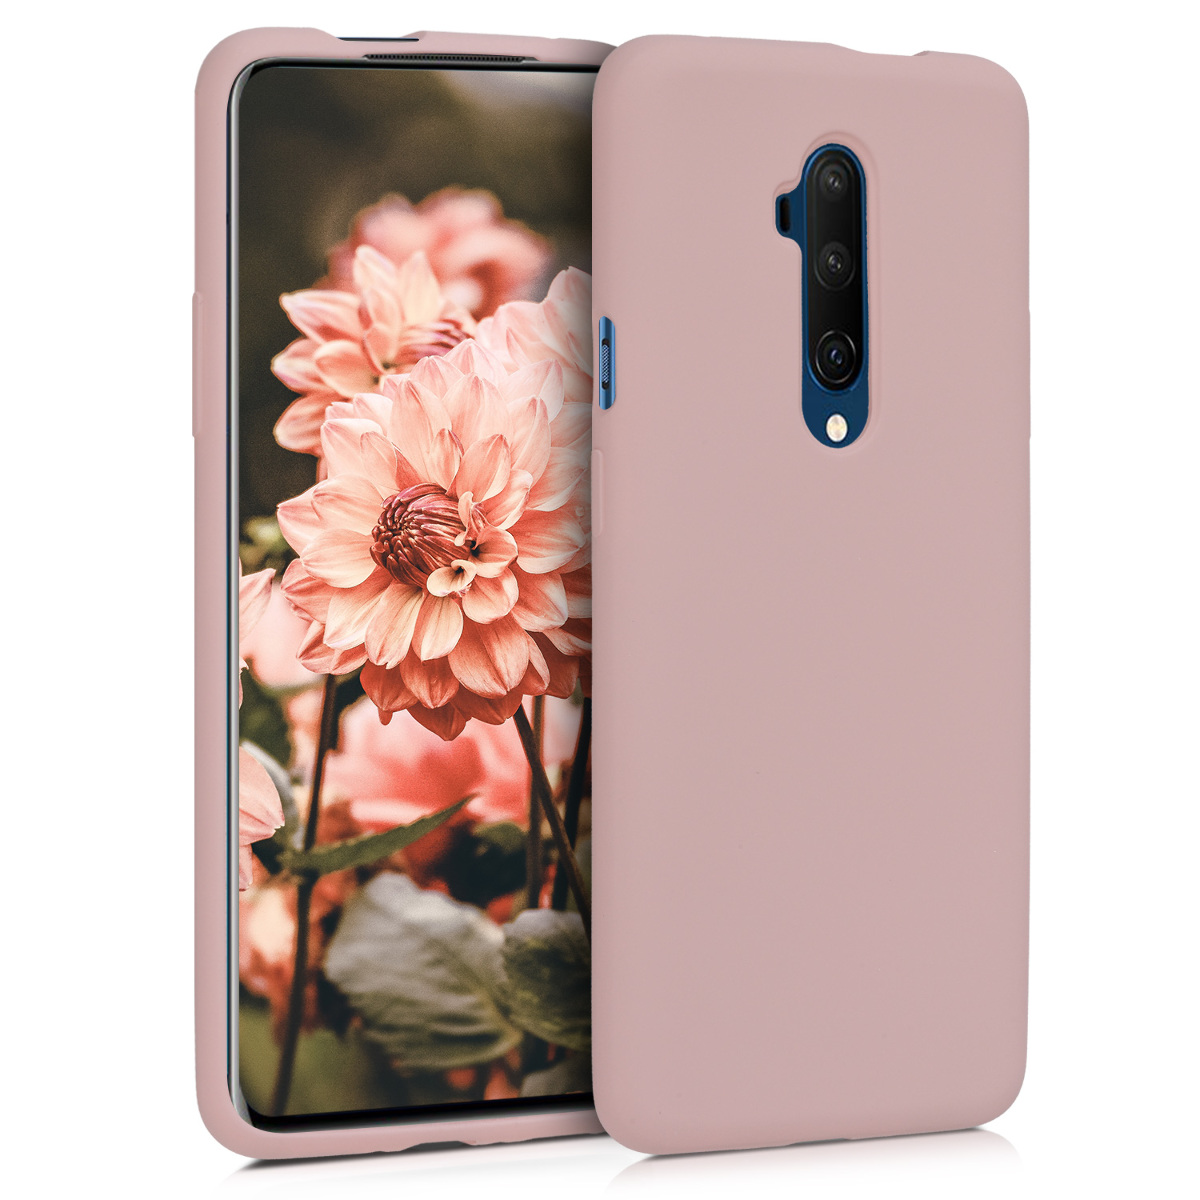 KW Θήκη Σιλικόνης OnePlus 7T Pro - Soft Flexible Rubber - Dusty Pink (49989.10)